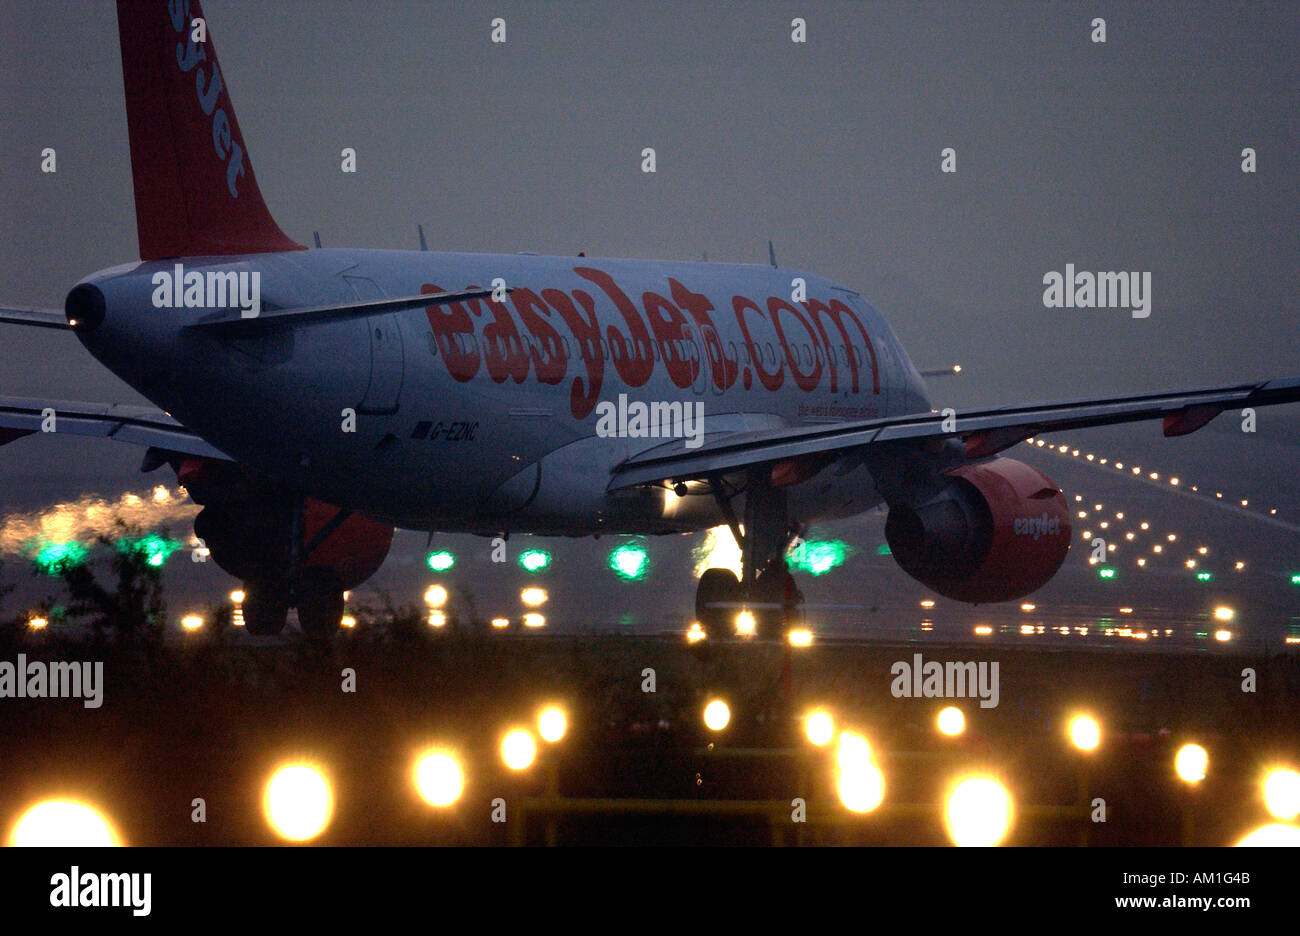 An EasyJet plane prepares for takeoff from London Gatwick airport runway at night - Stock Image